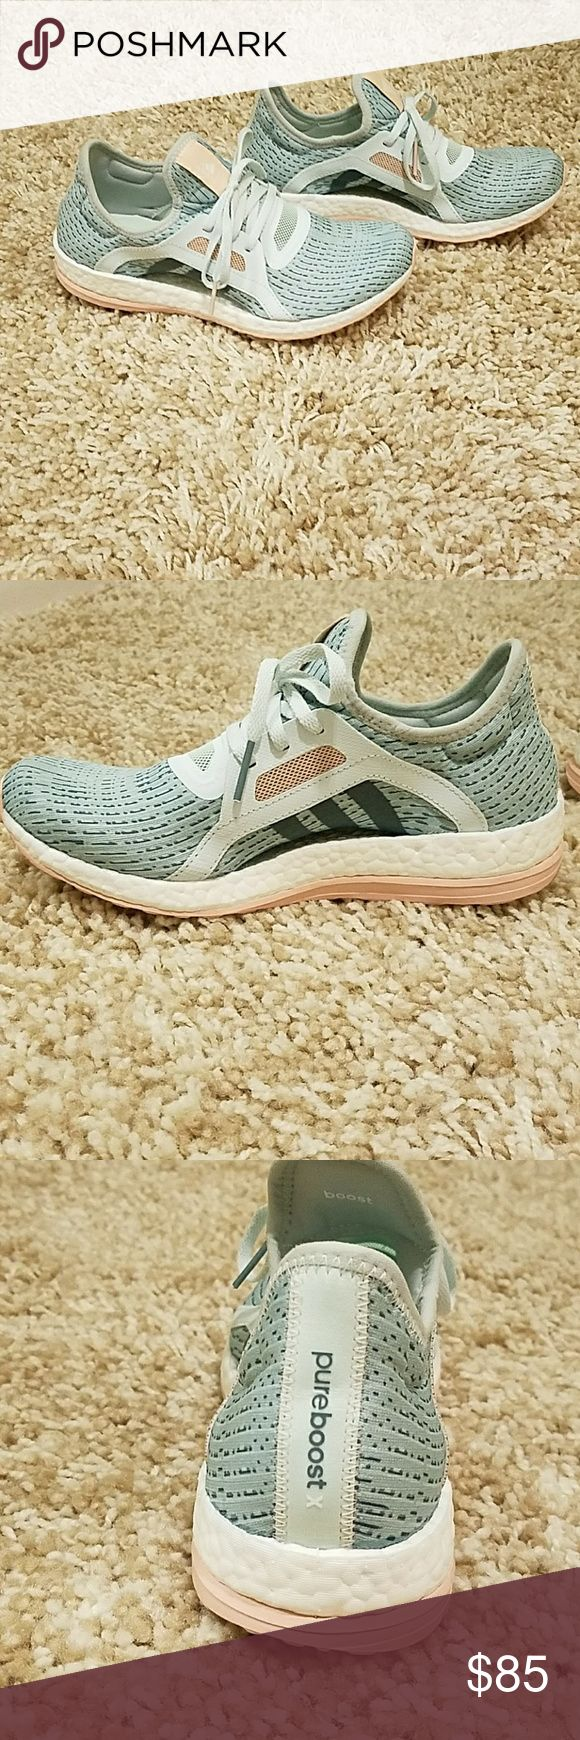 Adidas pure boost sneakers Baby blue and pink Adidas pure boost. Only worn once. Too big on me. Great condition. Adidas Shoes Athletic Shoes